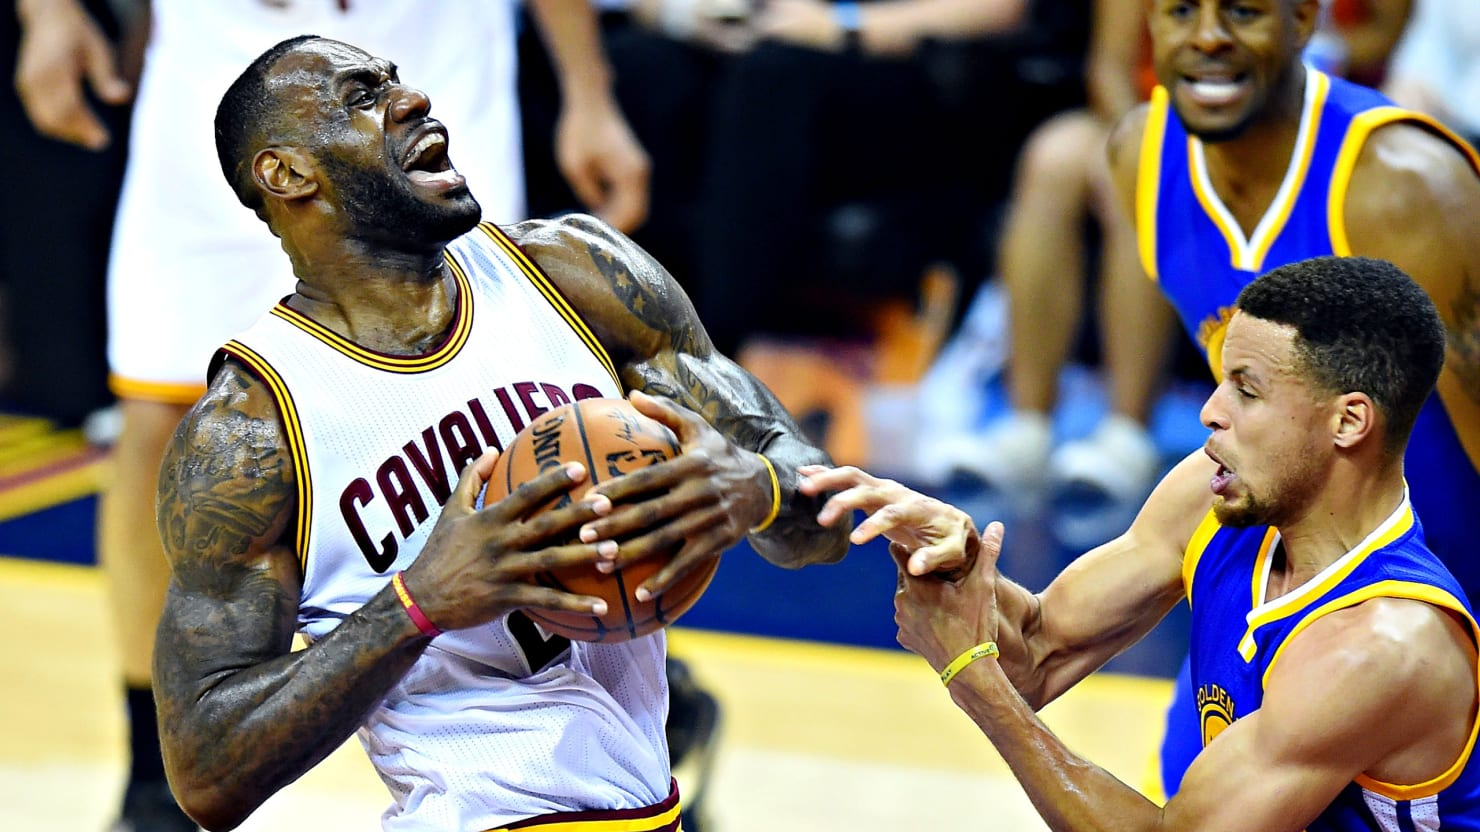 Cleveland Cavaliers Vs Golden State Warriors Game 2 Full | Autos Post